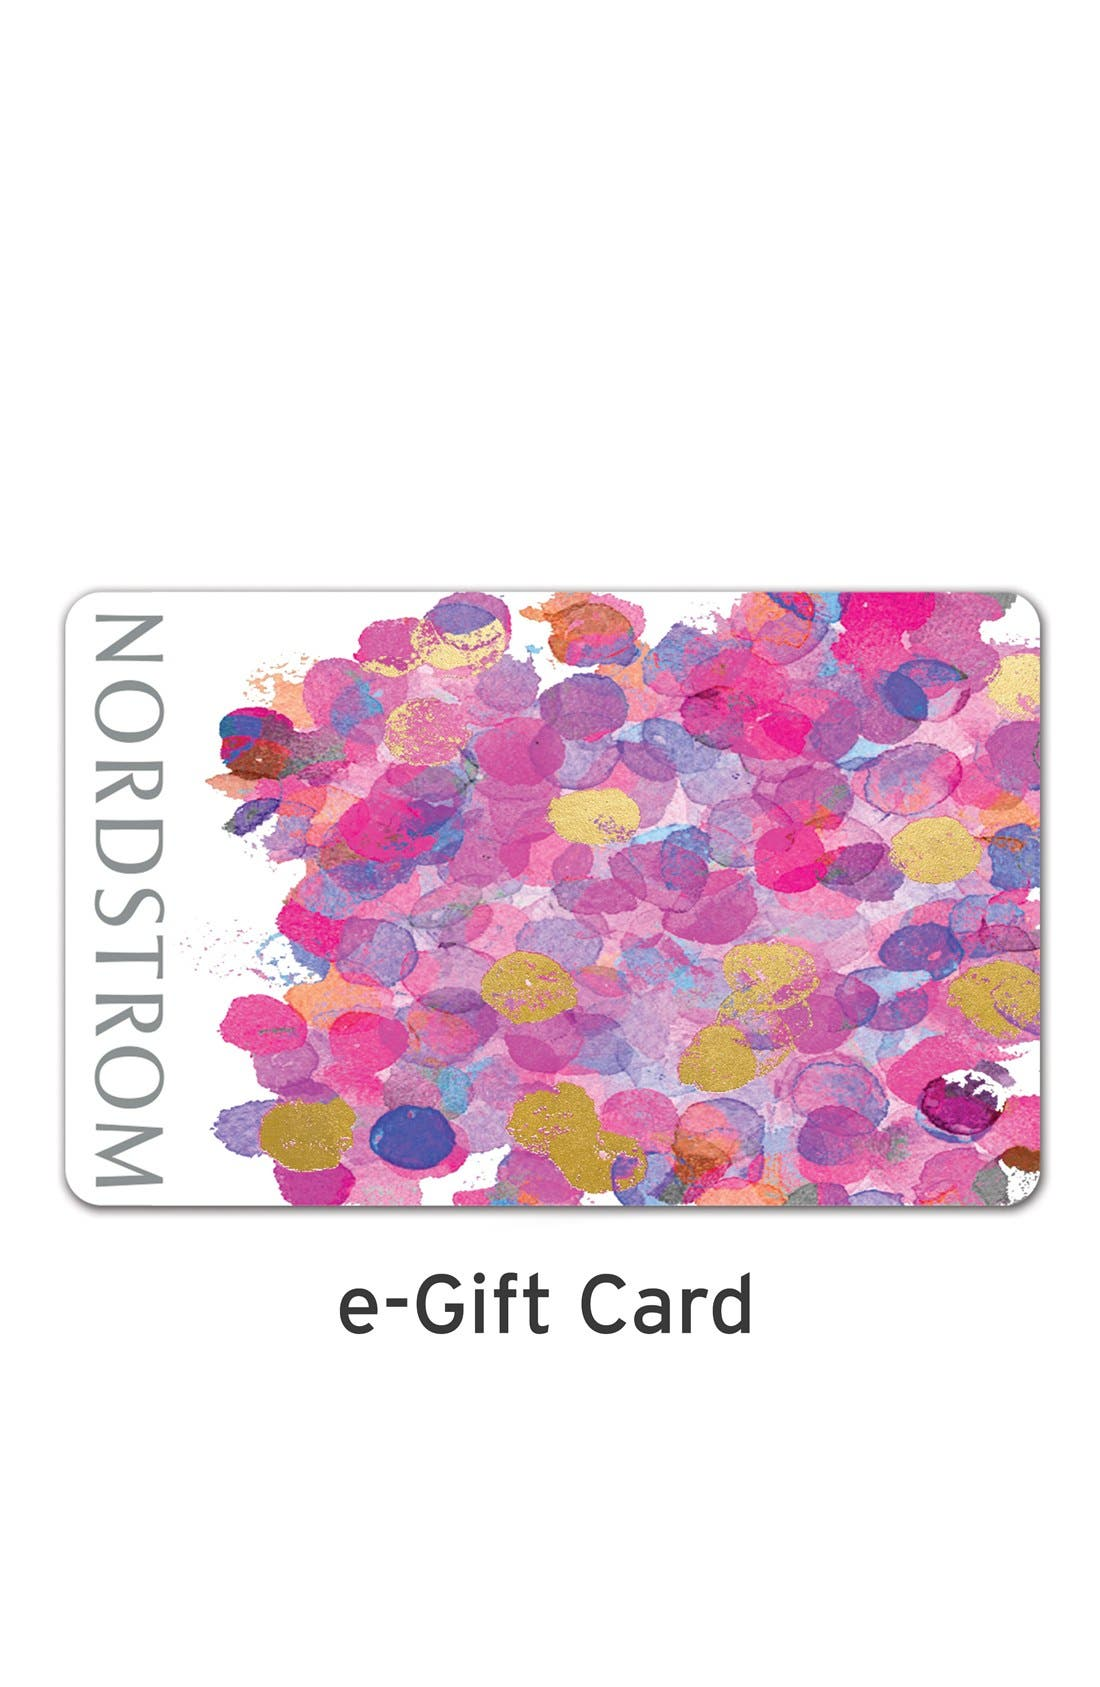 e-Gift Card Splotches